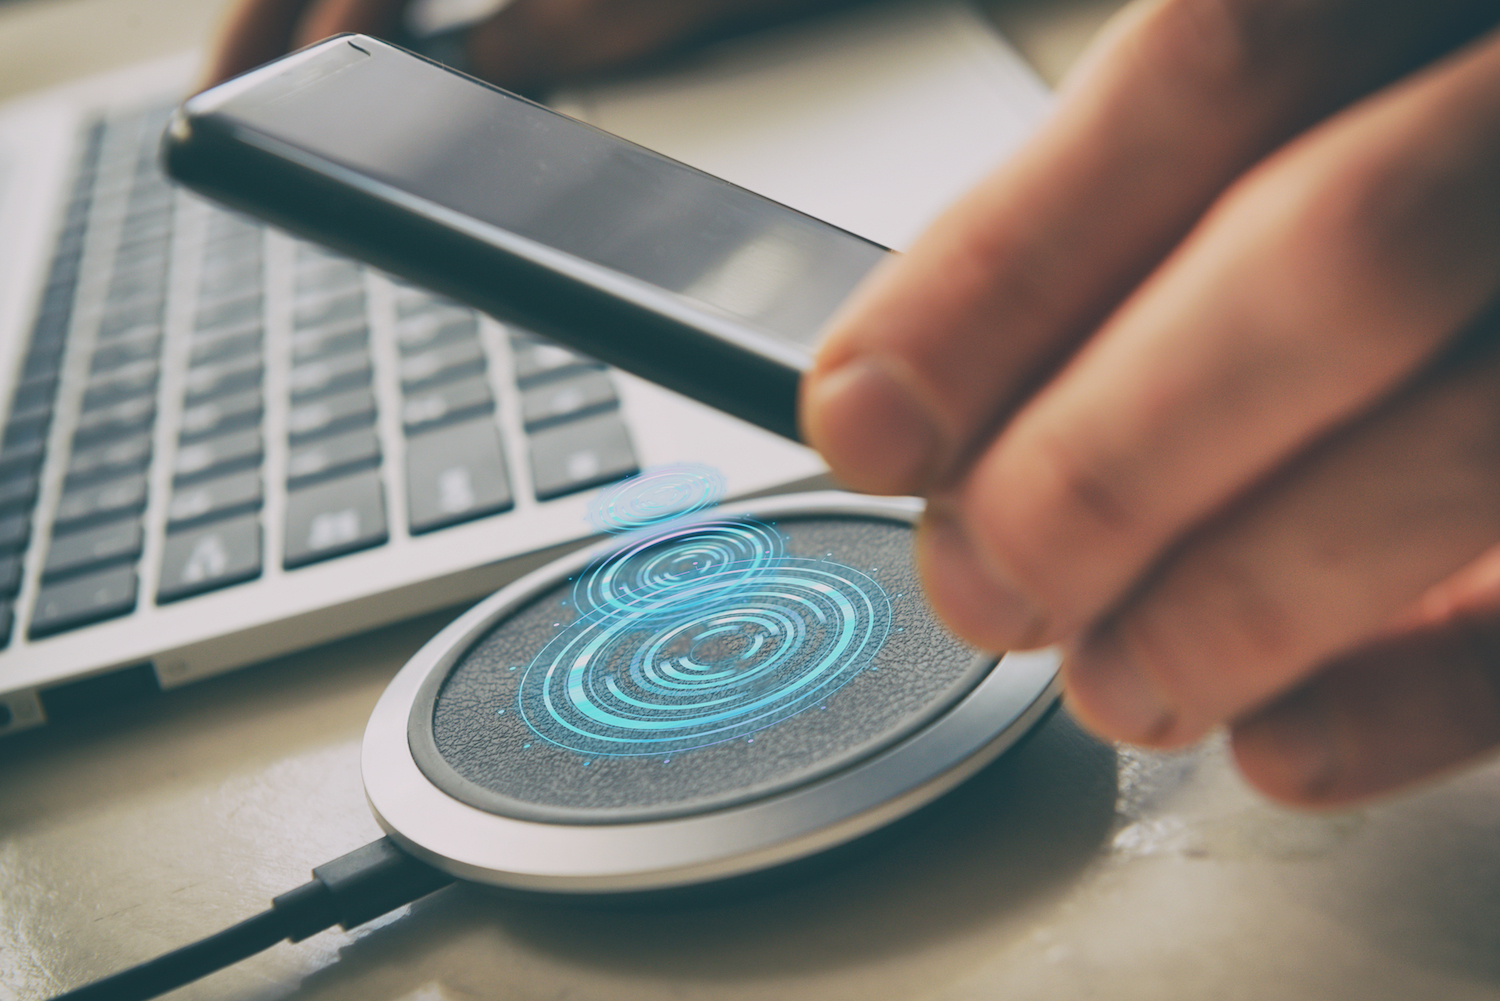 How does wireless charging work and what are the best wireless chargers of 2020?